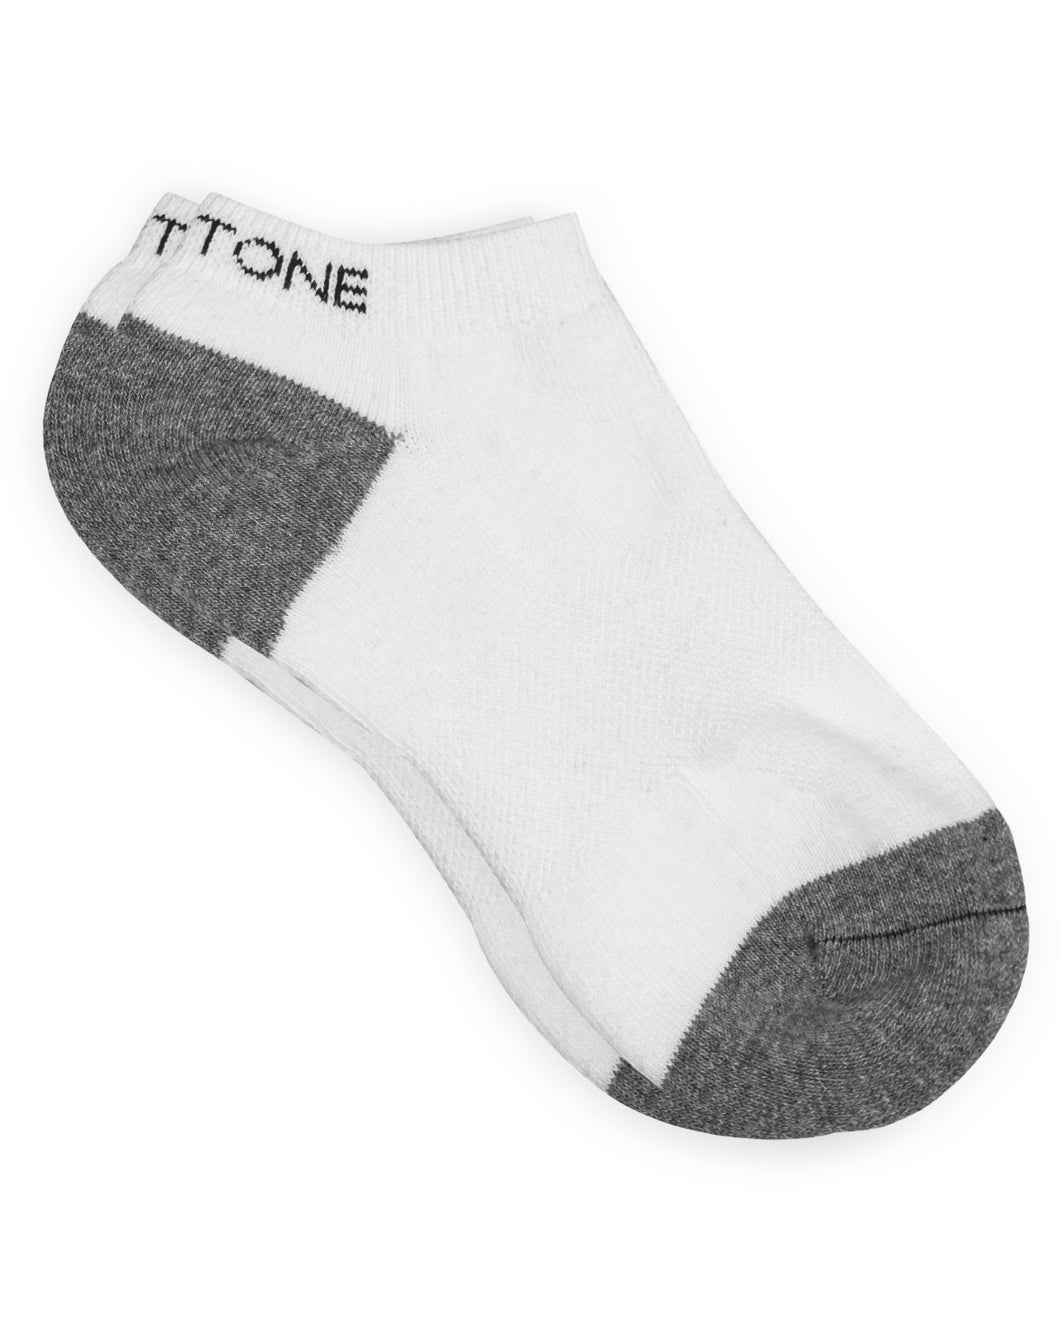 Adult White Socks